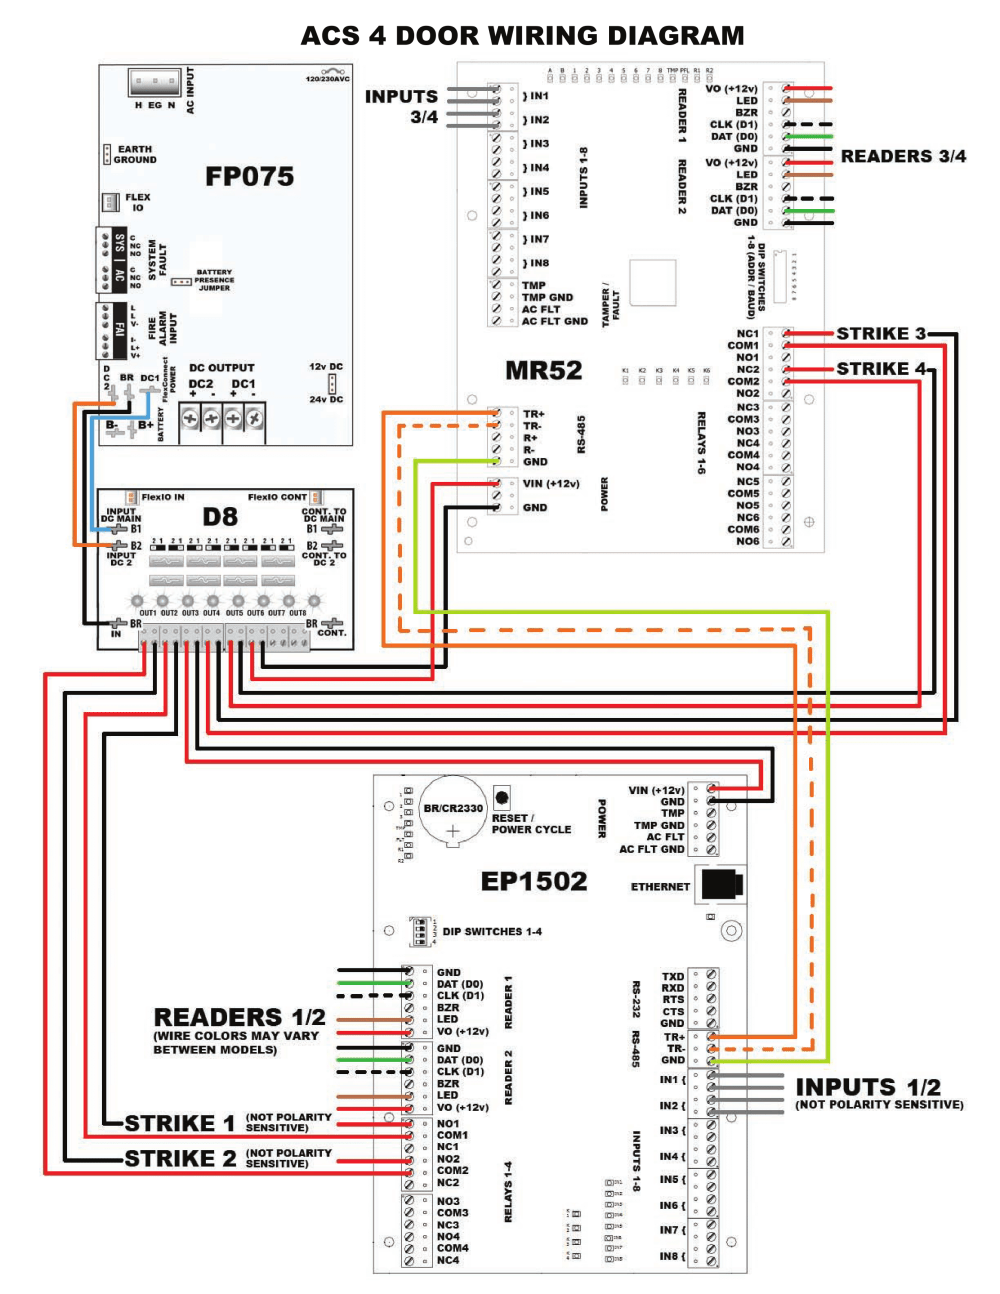 medium resolution of wiring e5 7 myers images gallery acs 4 door wiring diagram ep1502 remotelock